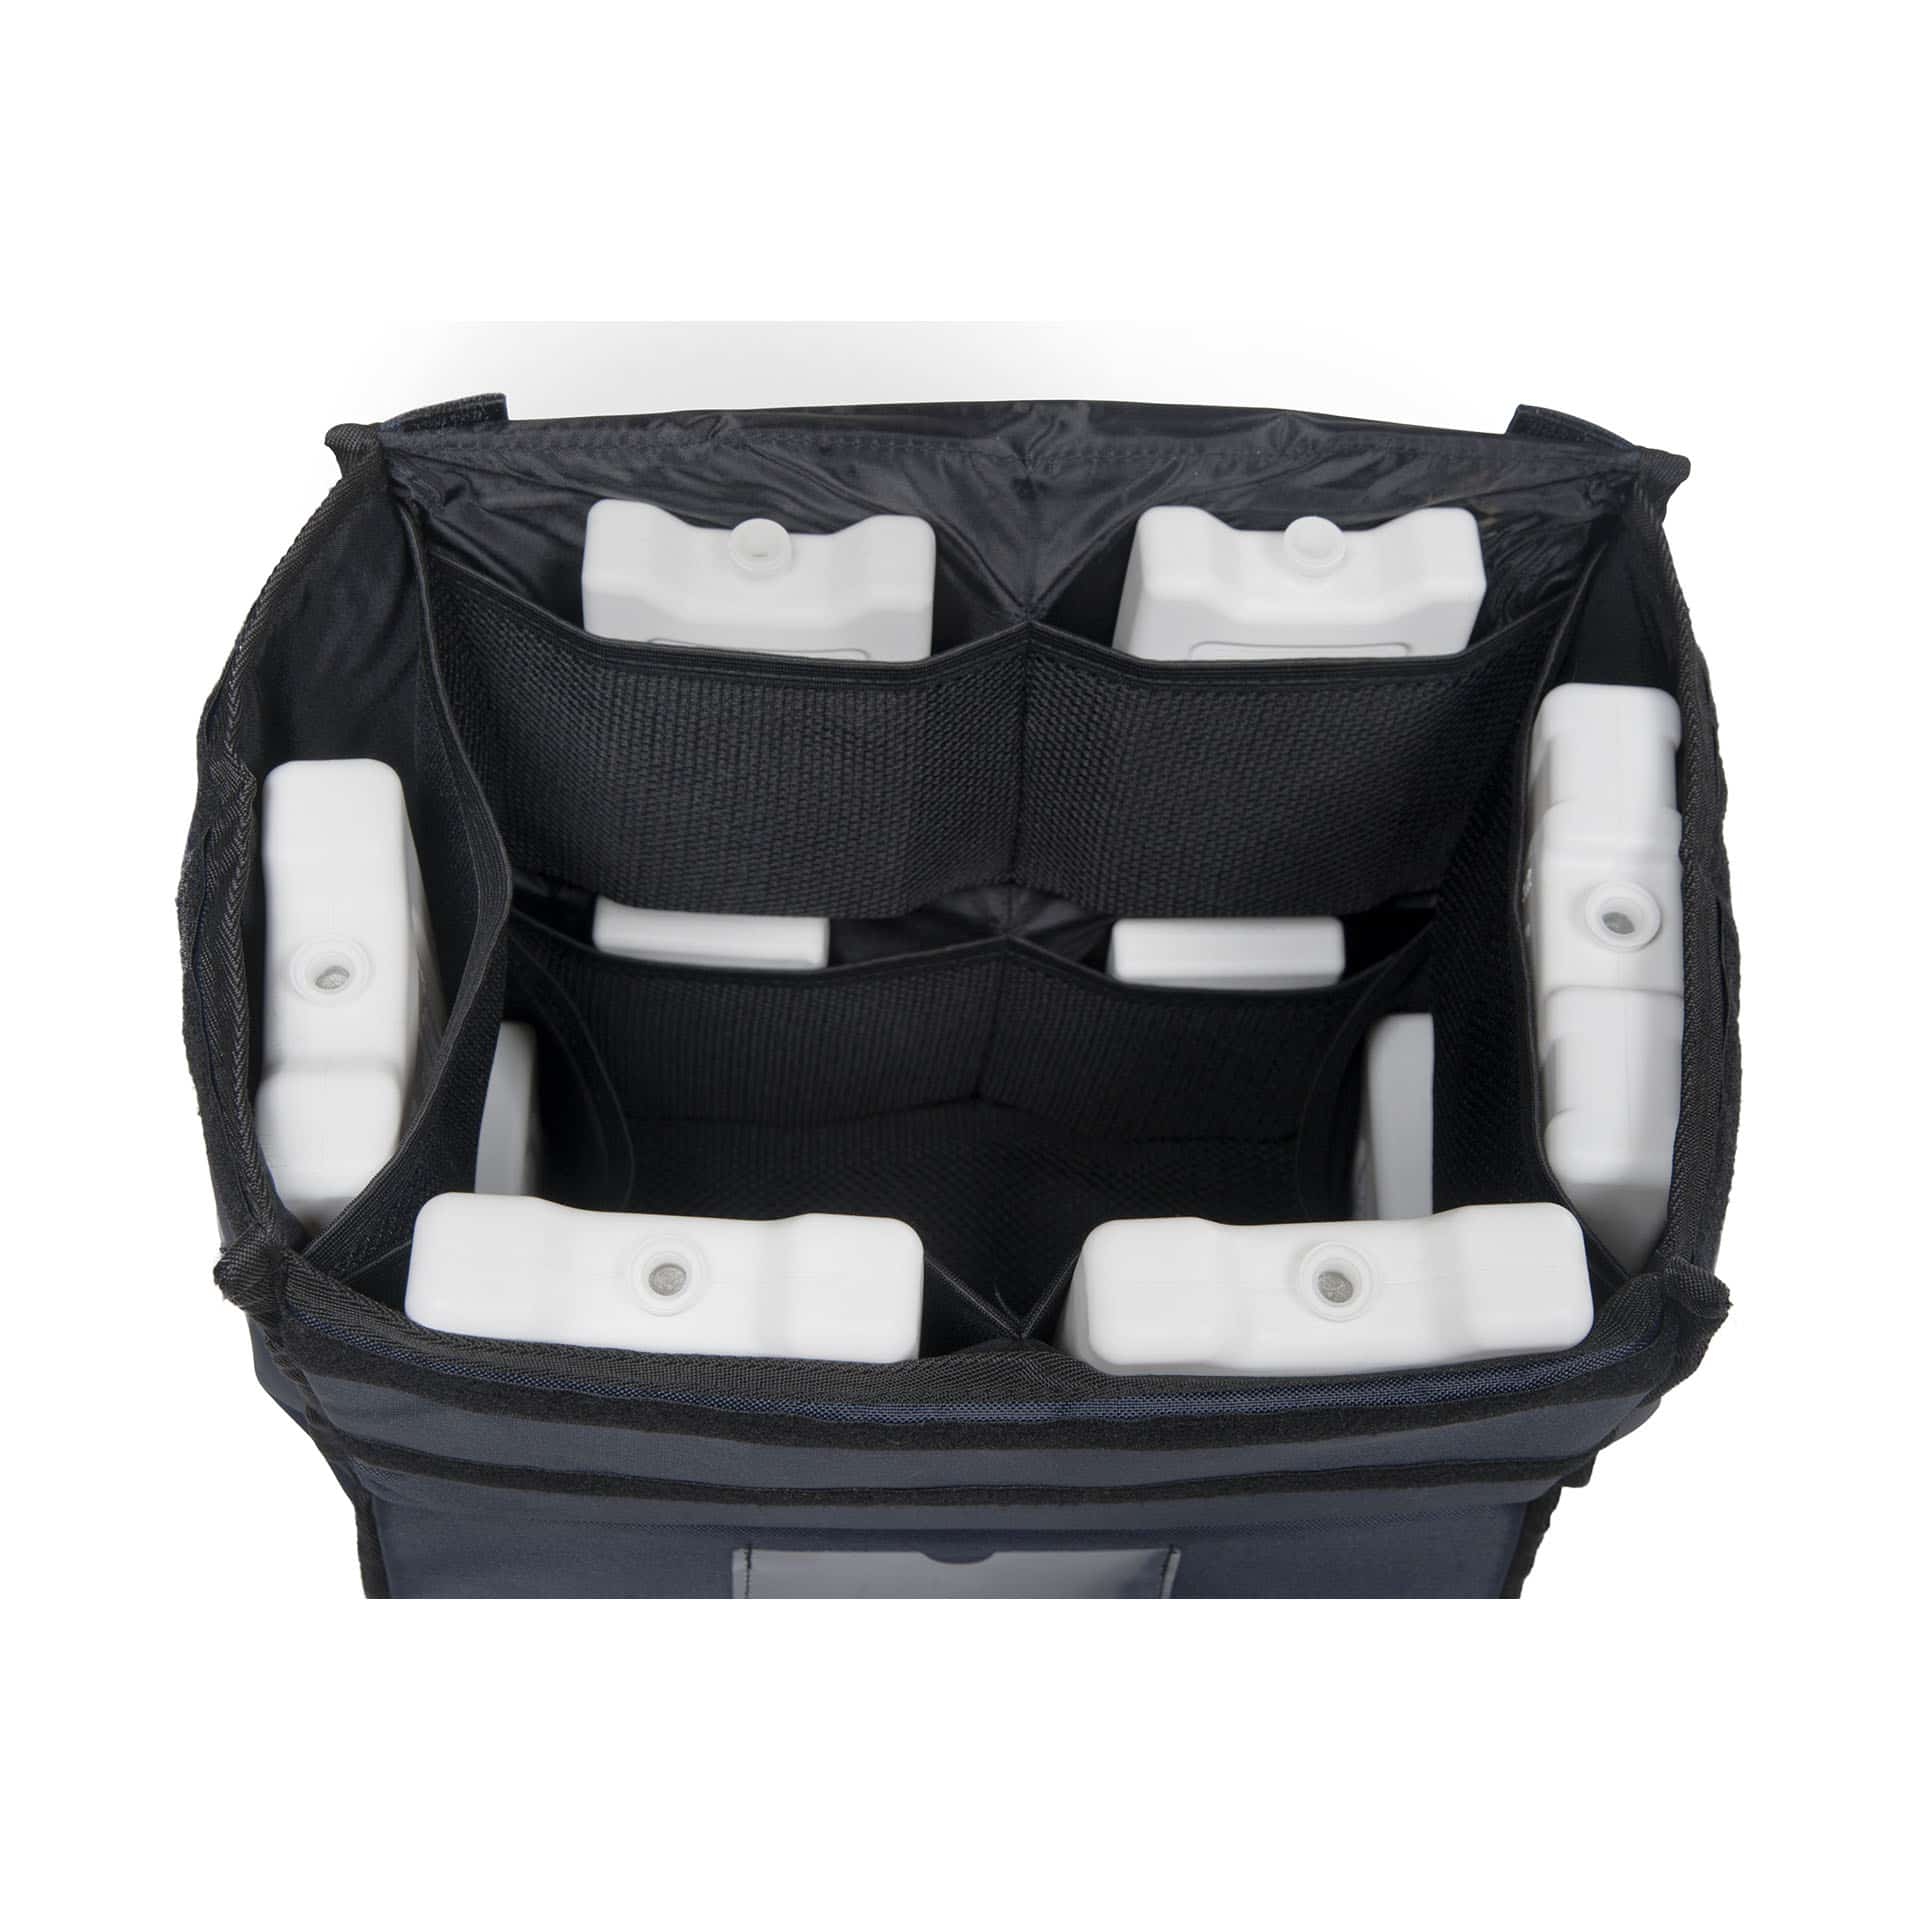 Professional insulated backpack for hot or cold meal, food delivery, at controlled temperature.